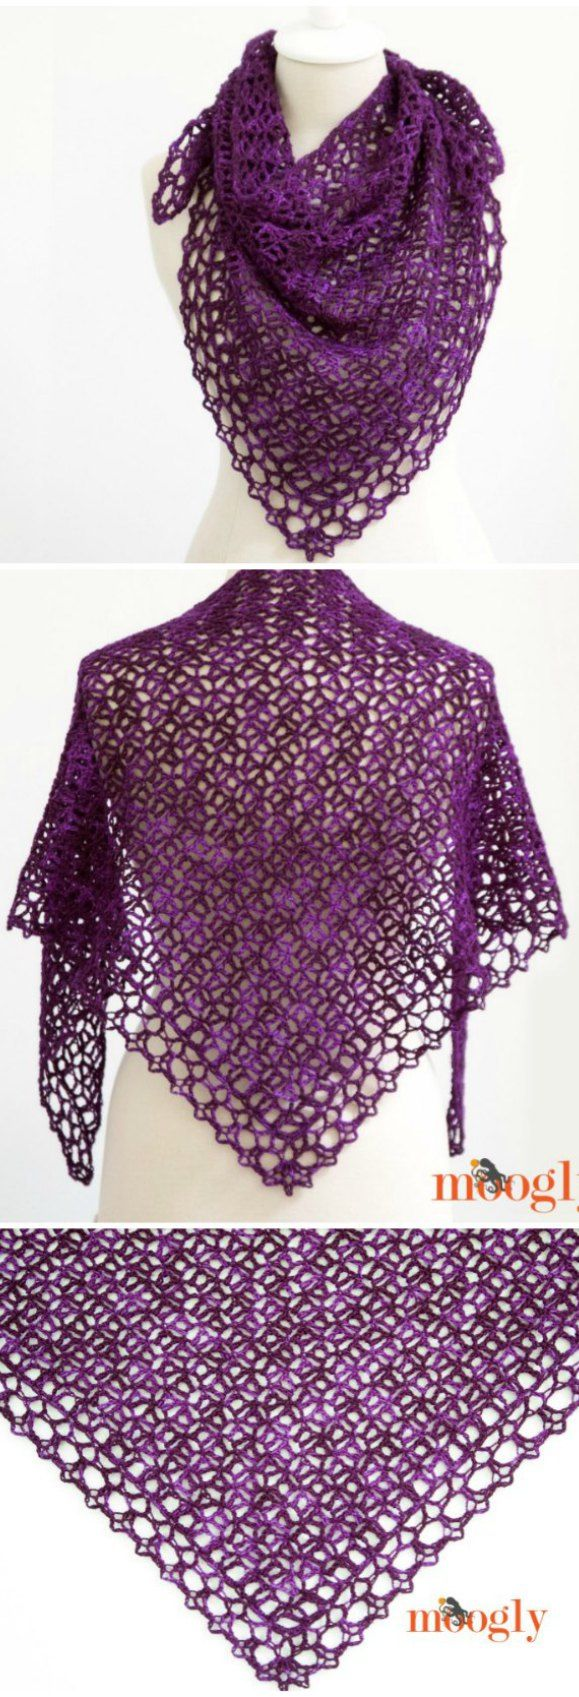 Fortunes Crochet Shawlette Pattern - Free Video And Written Tutorial ...